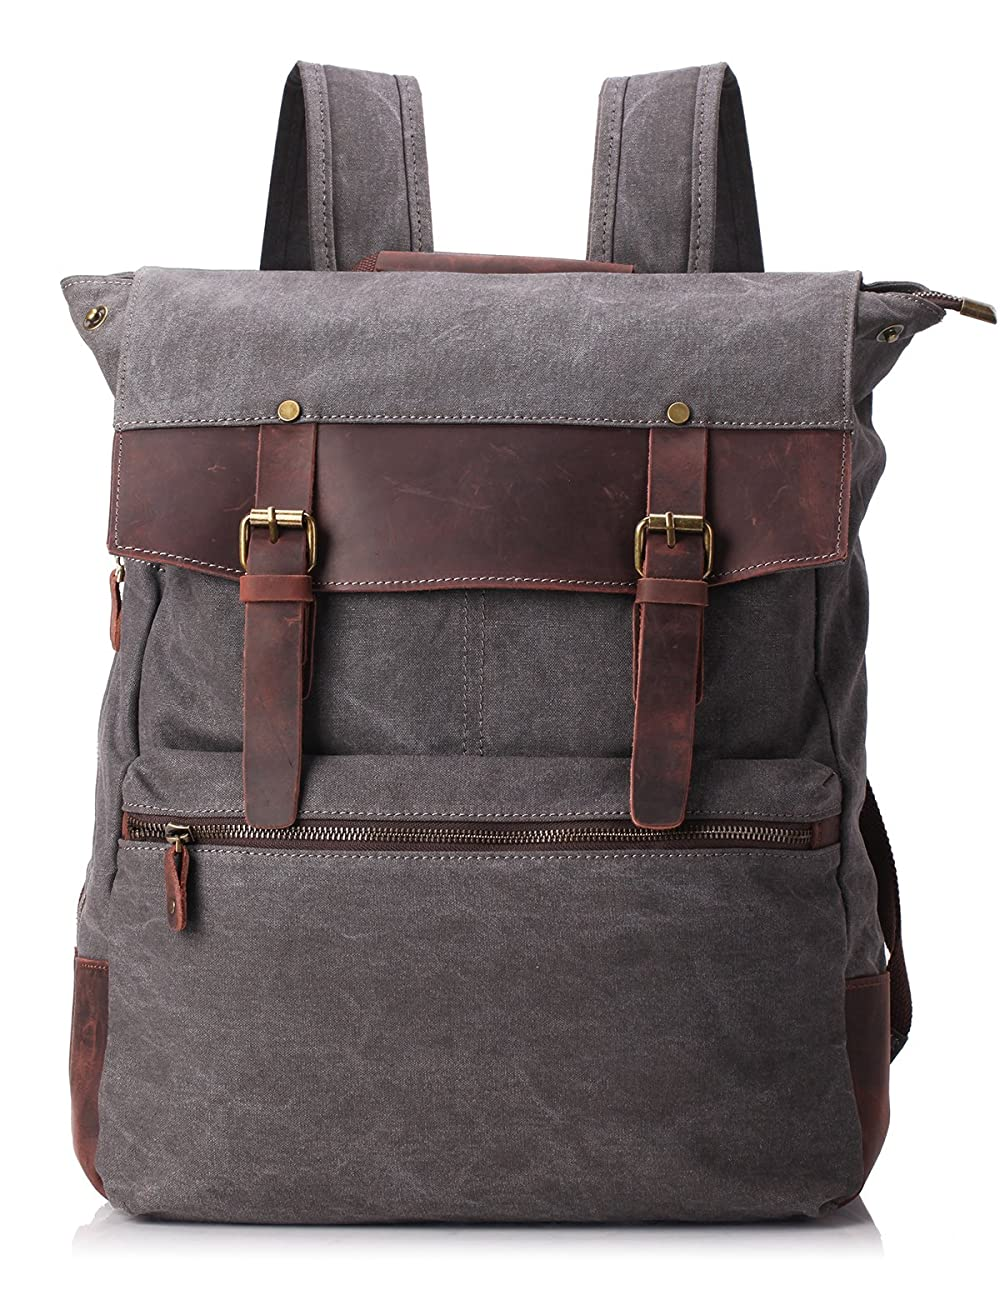 ZEKAR Vintage Waxed Canvas Leather Backpack, Multipurpose Daypacks 0